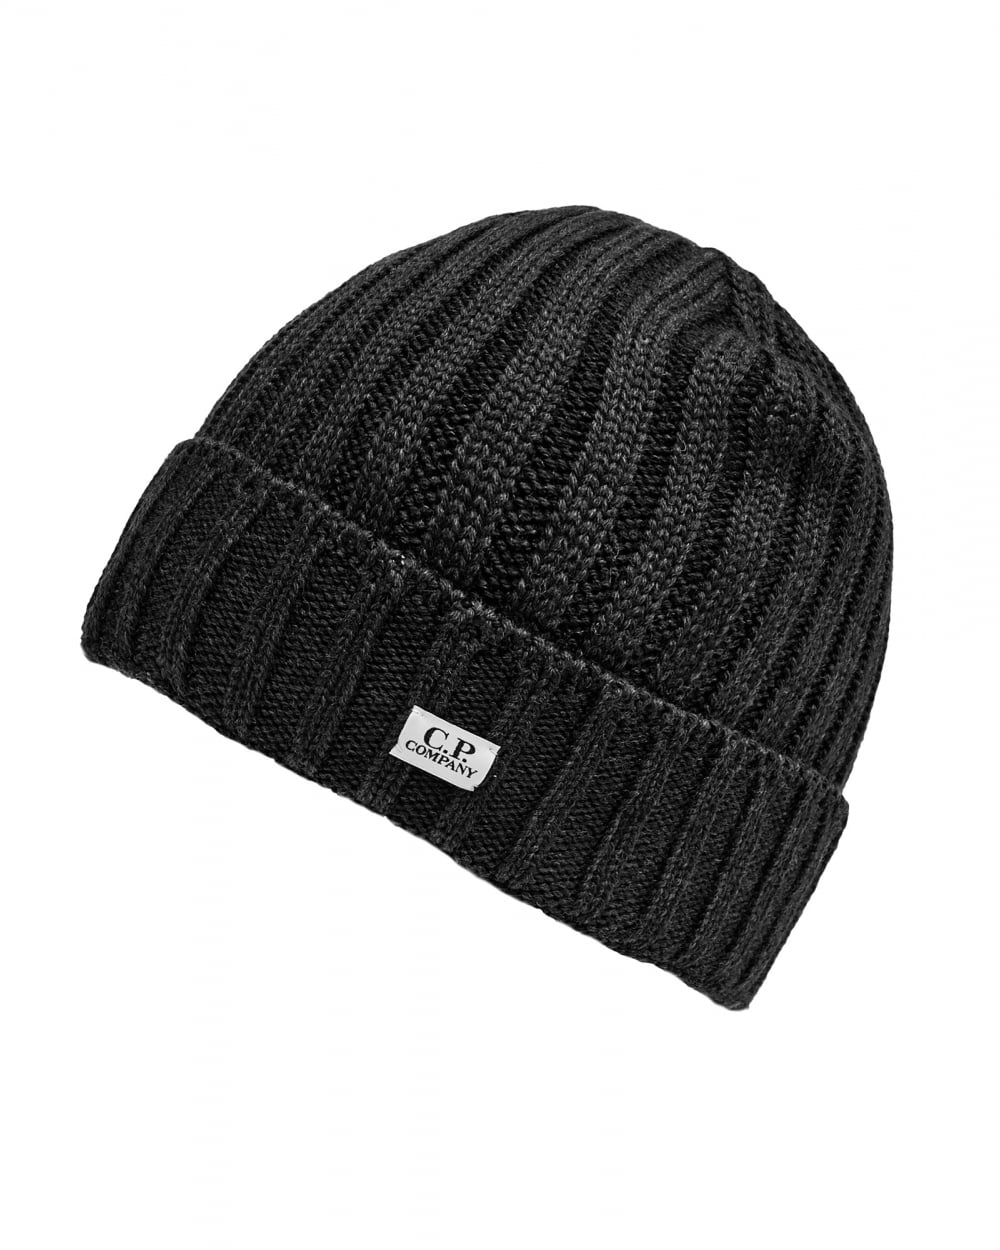 C.P. Company Mens Ribbed Label Black Beanie Hat cb4f2c382bb